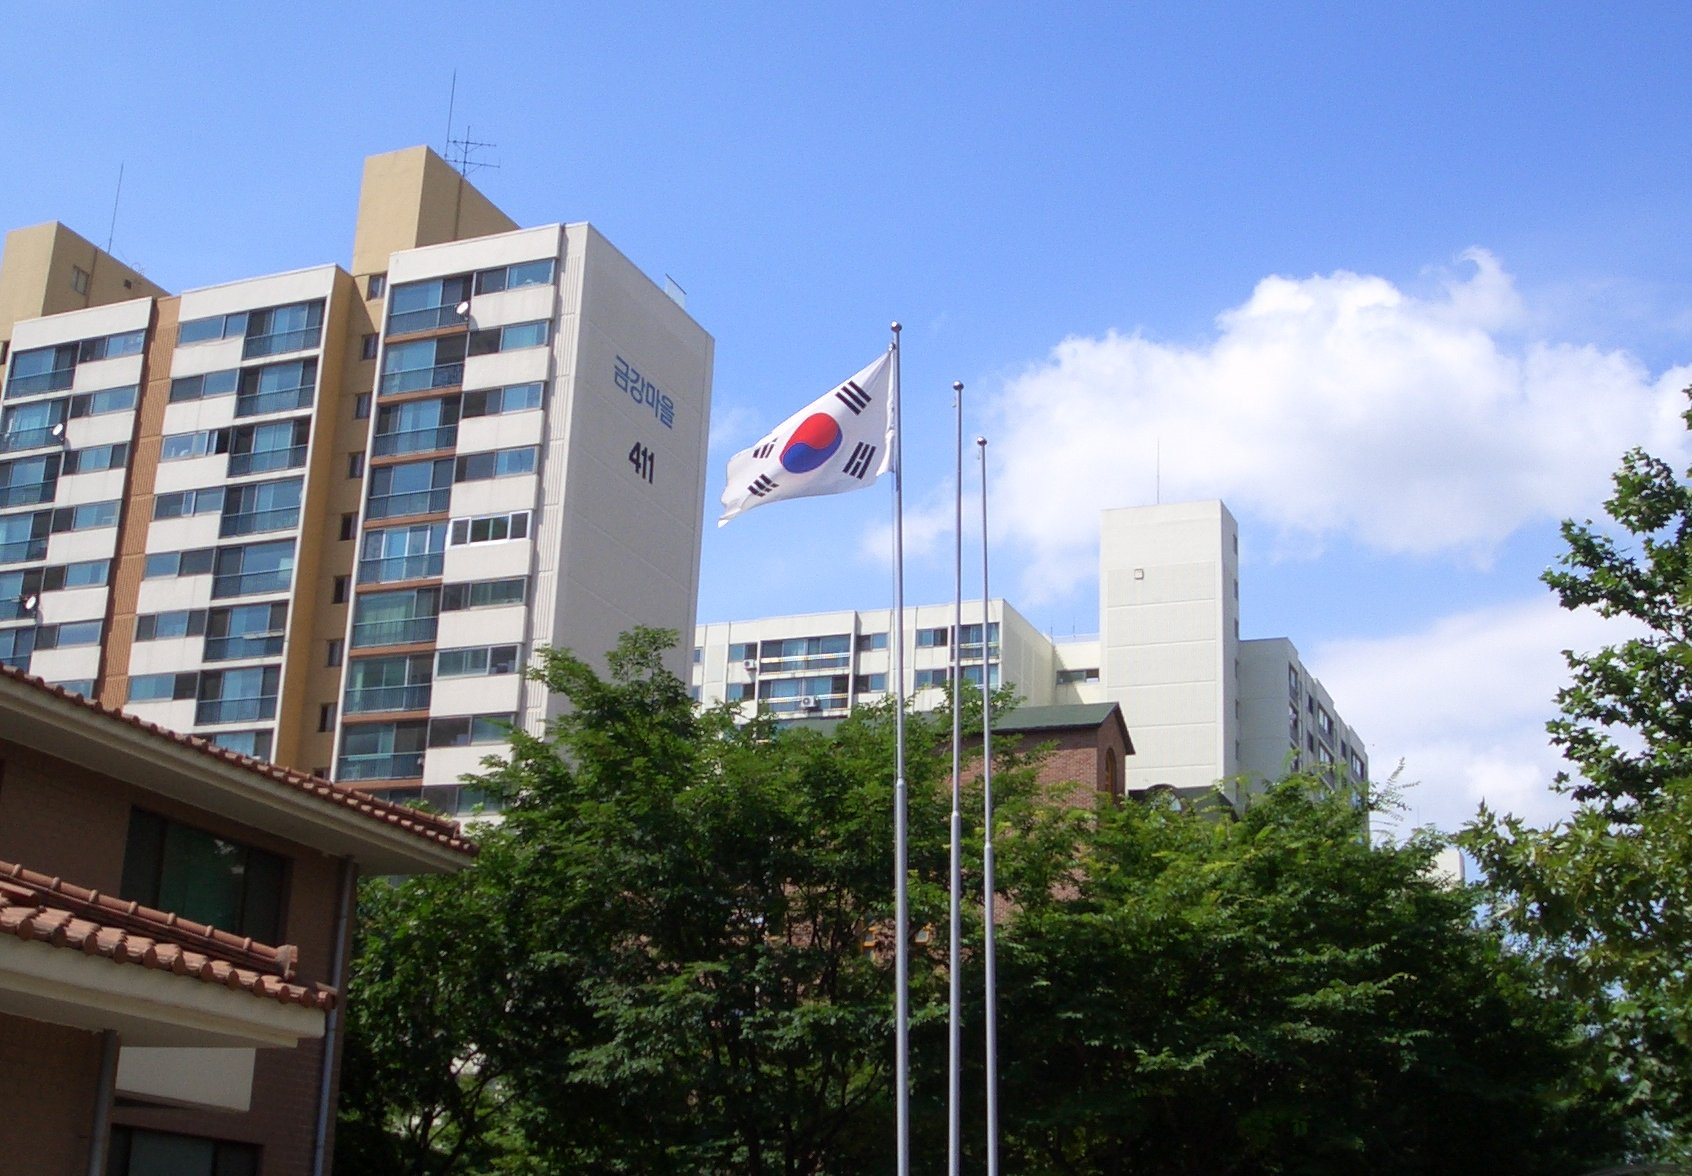 Bucheon-si South Korea  City pictures : South Korean flag flying Bucheon Wikipedia